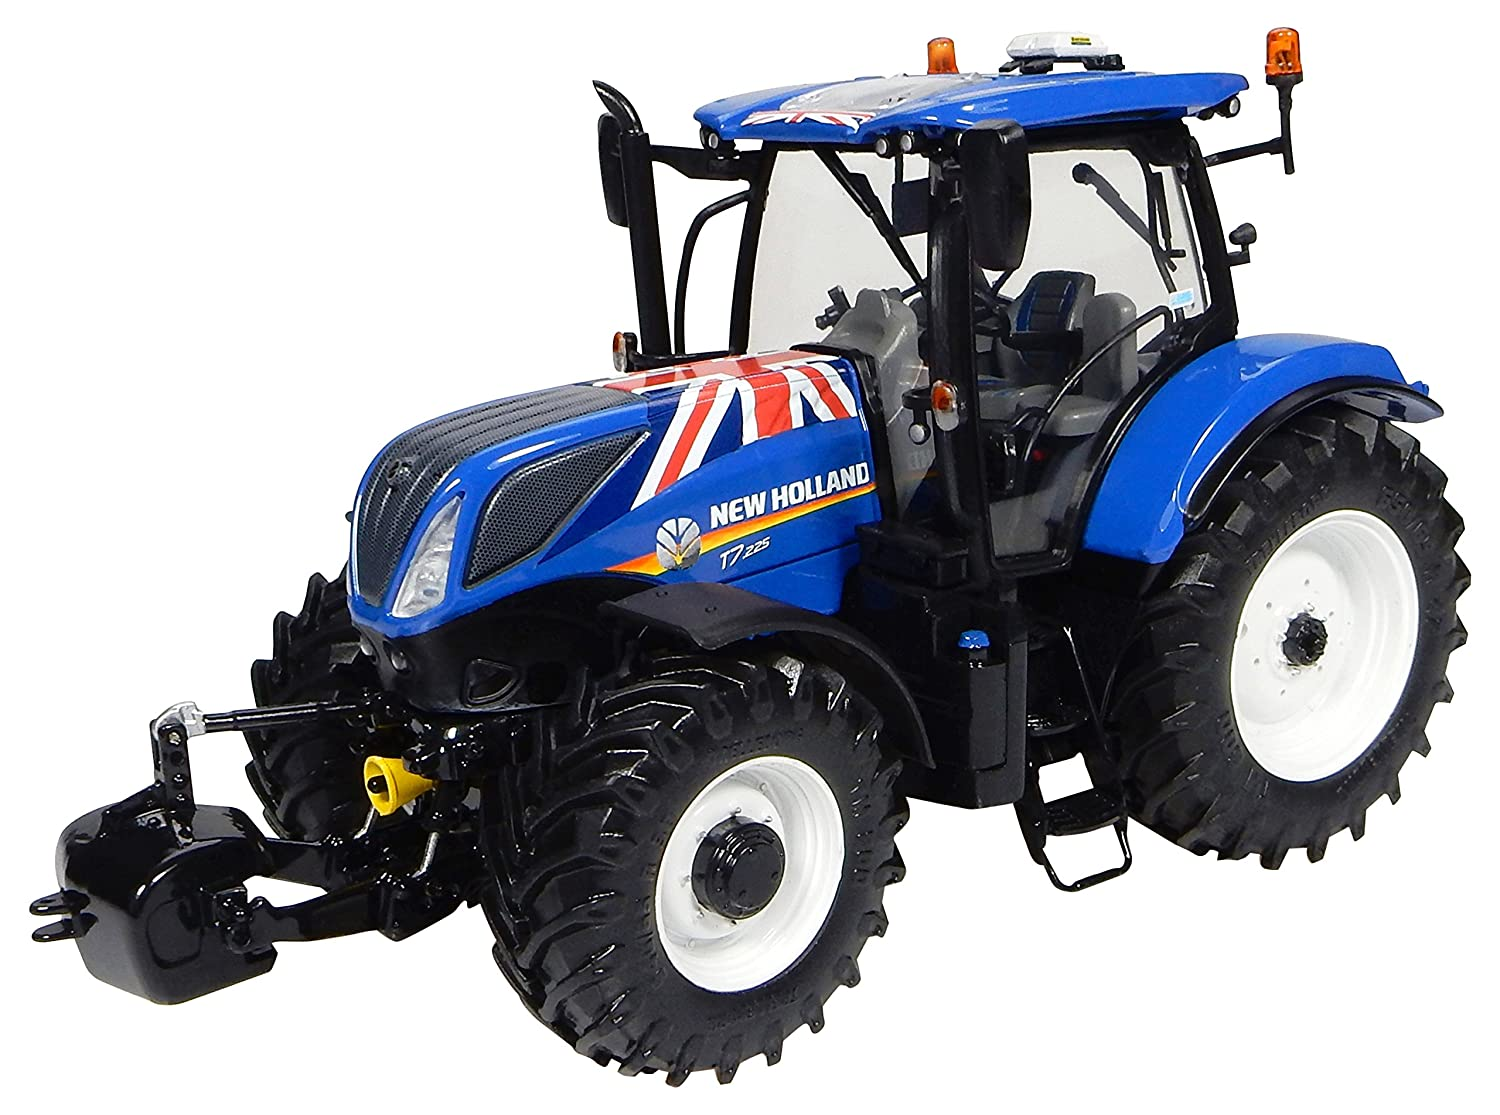 Universal Hobbies New Holland Tractor uh4901 – t7.225 – Union Jack Edition